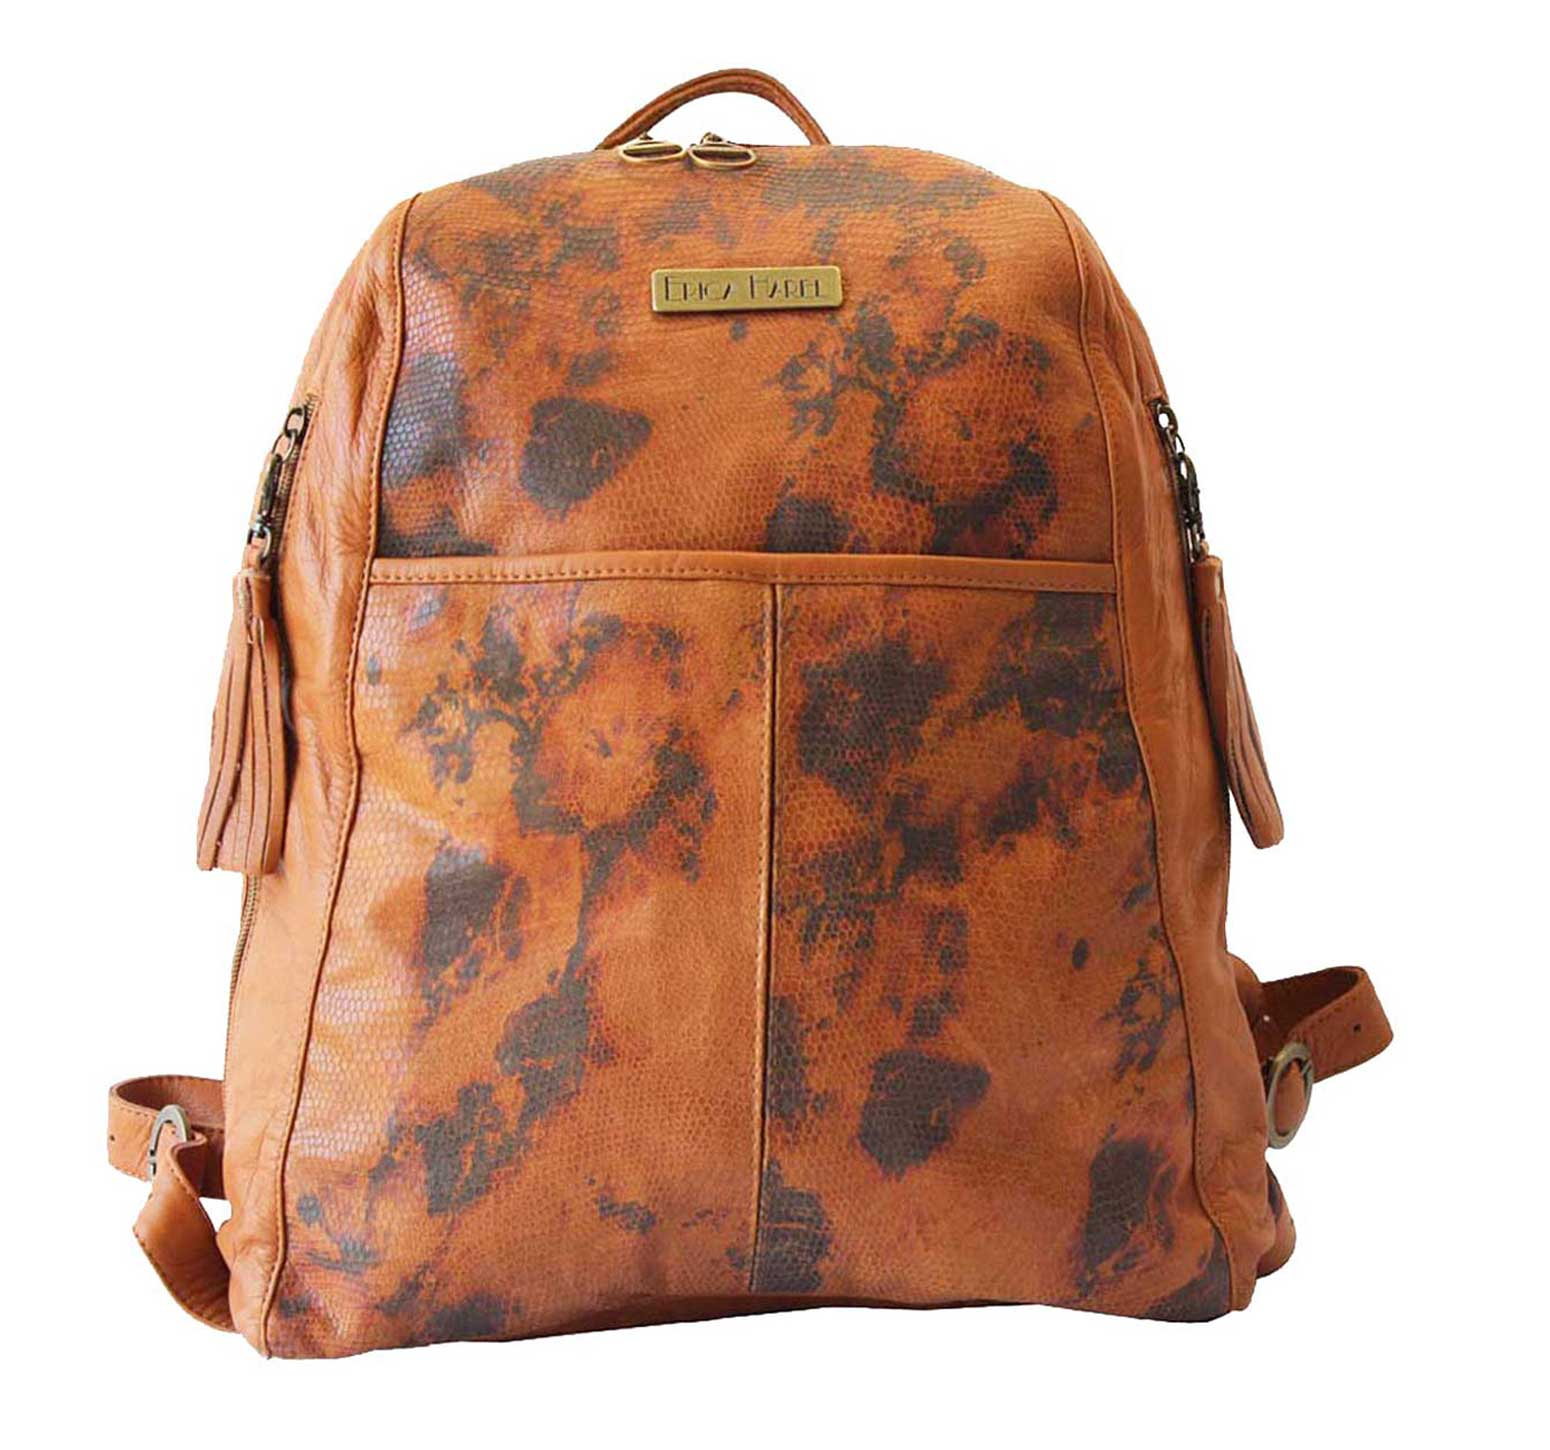 Soft Camel Leather Backpack | Printed Leather Designer Backpack